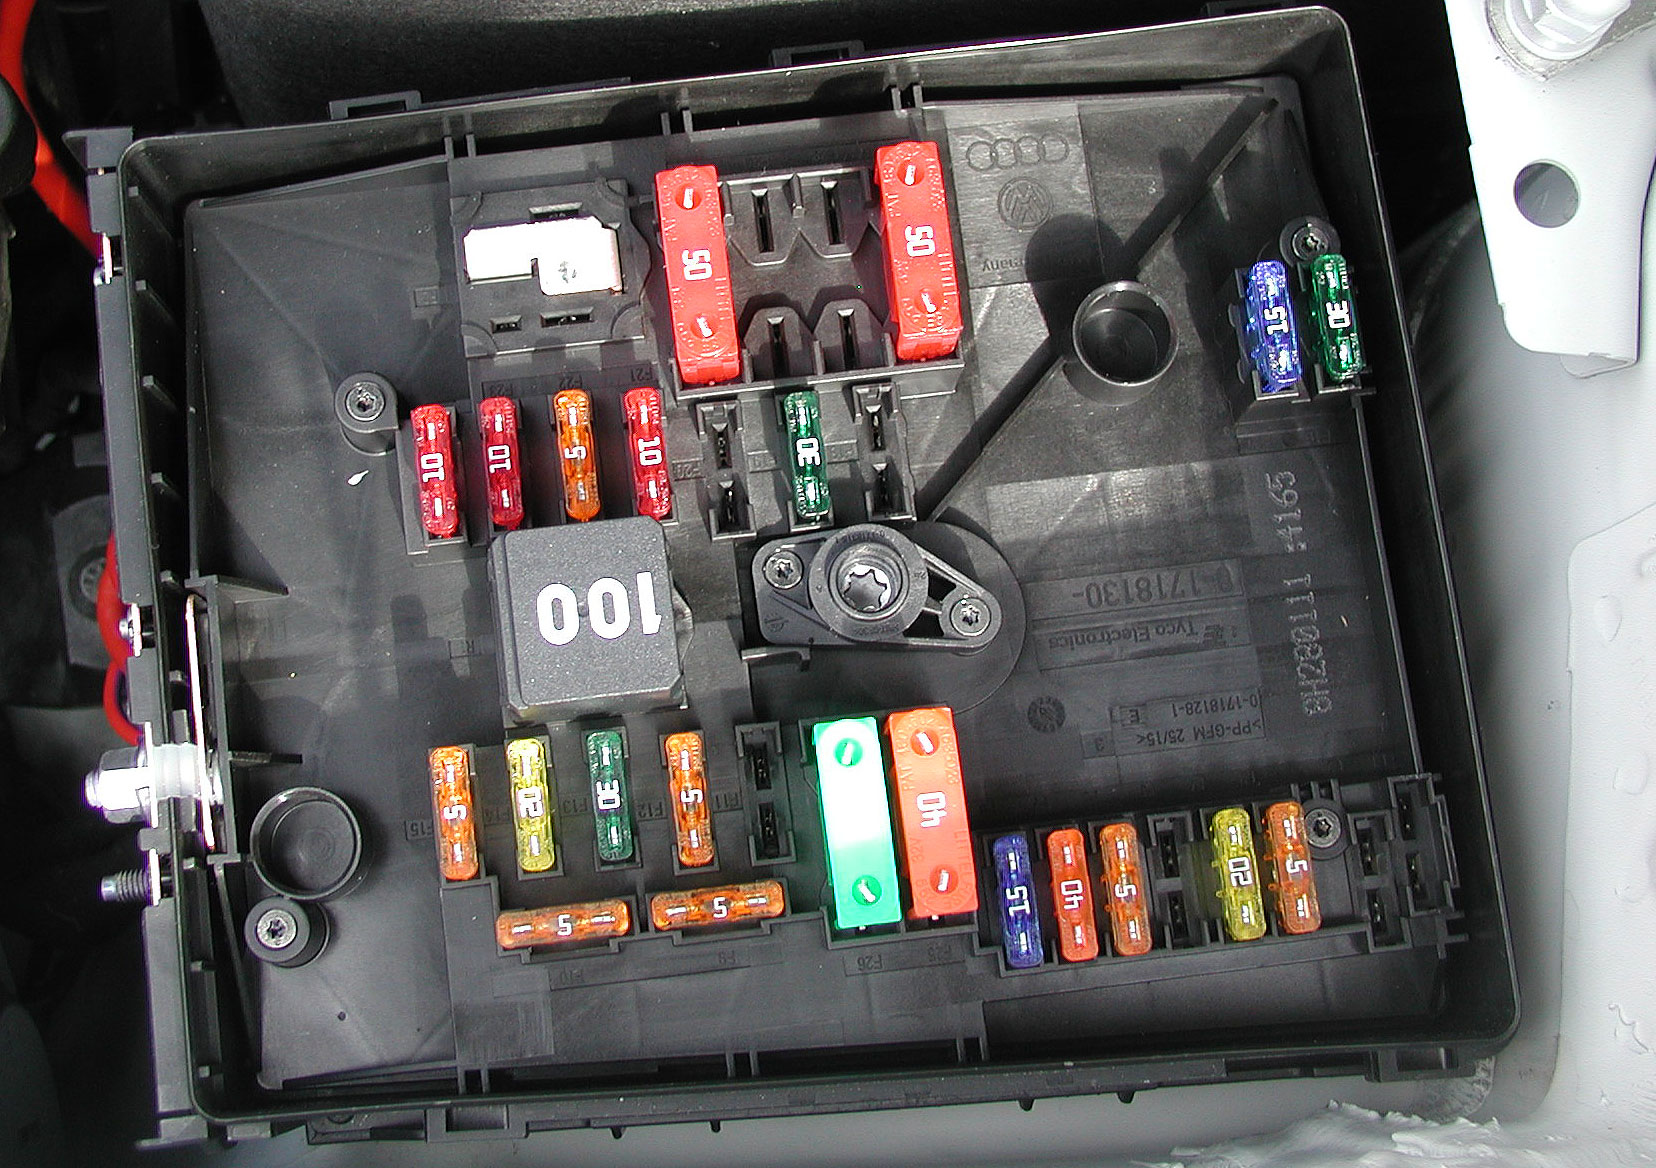 2003 Vw Golf Fuse Box Trusted Schematics Diagram Honda Civic Location P 2011 Tdi Picture Please Tdiclub Forums Jeep Wrangler